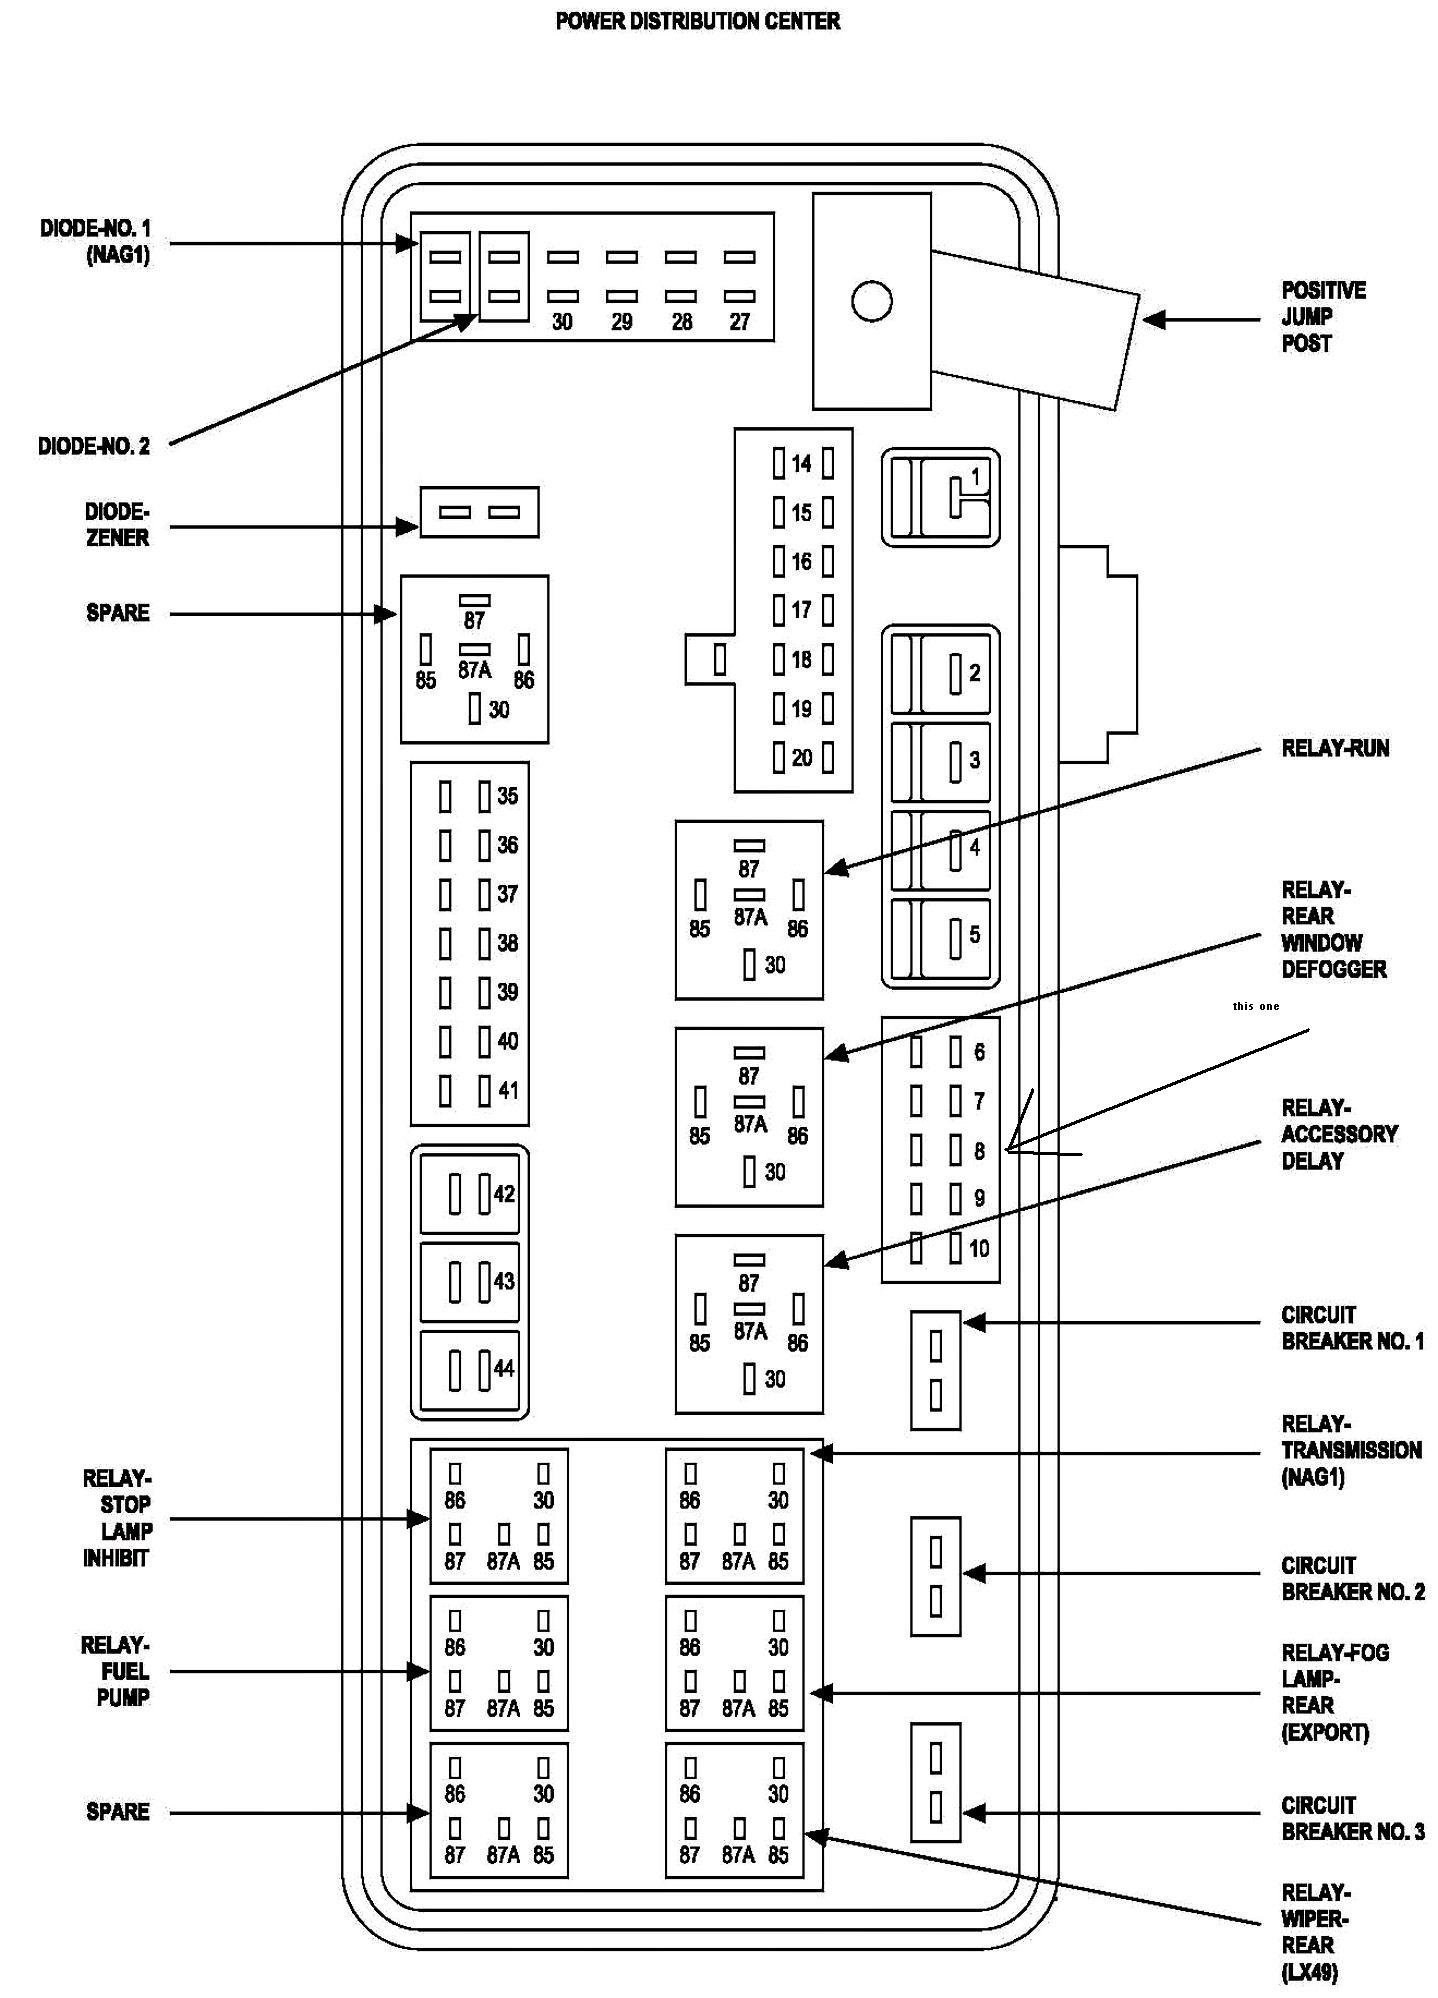 1984 Buick Wiring Diagrams Simple Diagram Page 1995 Lesabre Radio Fuse Box Rendezvous Skyhawk